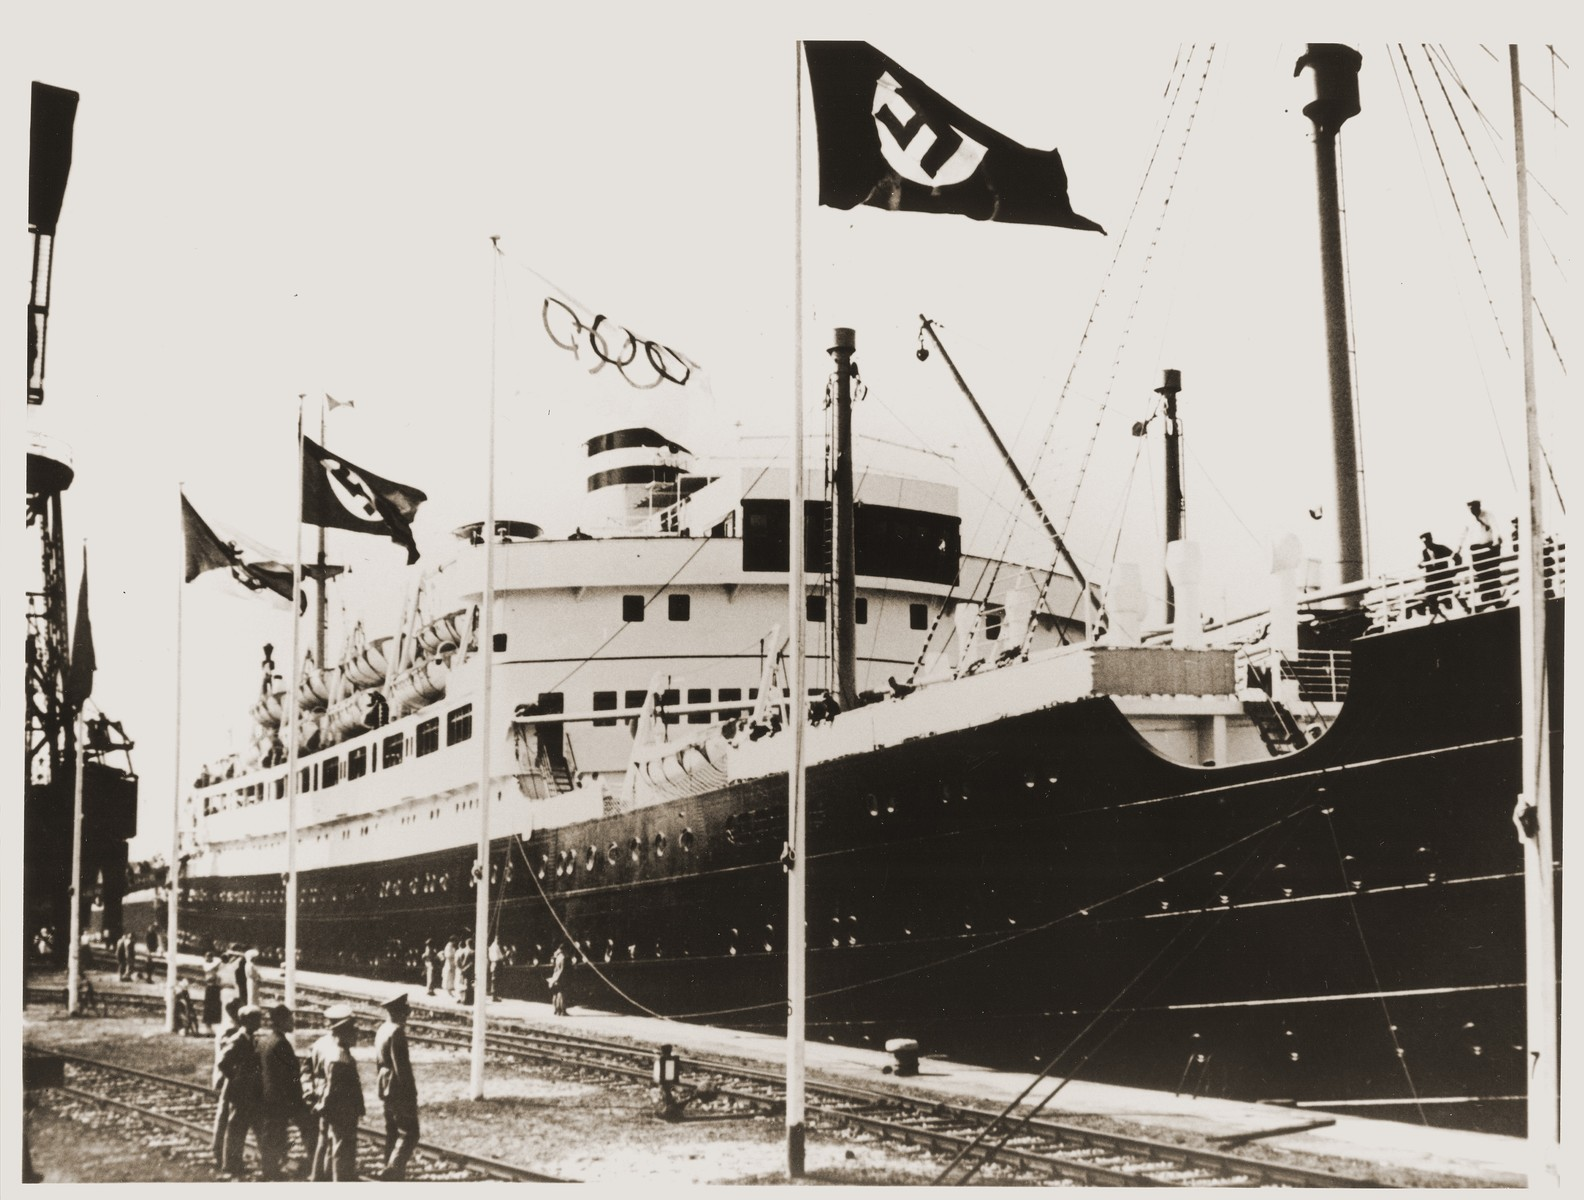 The U.S. motorship St. Louis, docked in Hamburg before the 11th Summer Olympic Games.